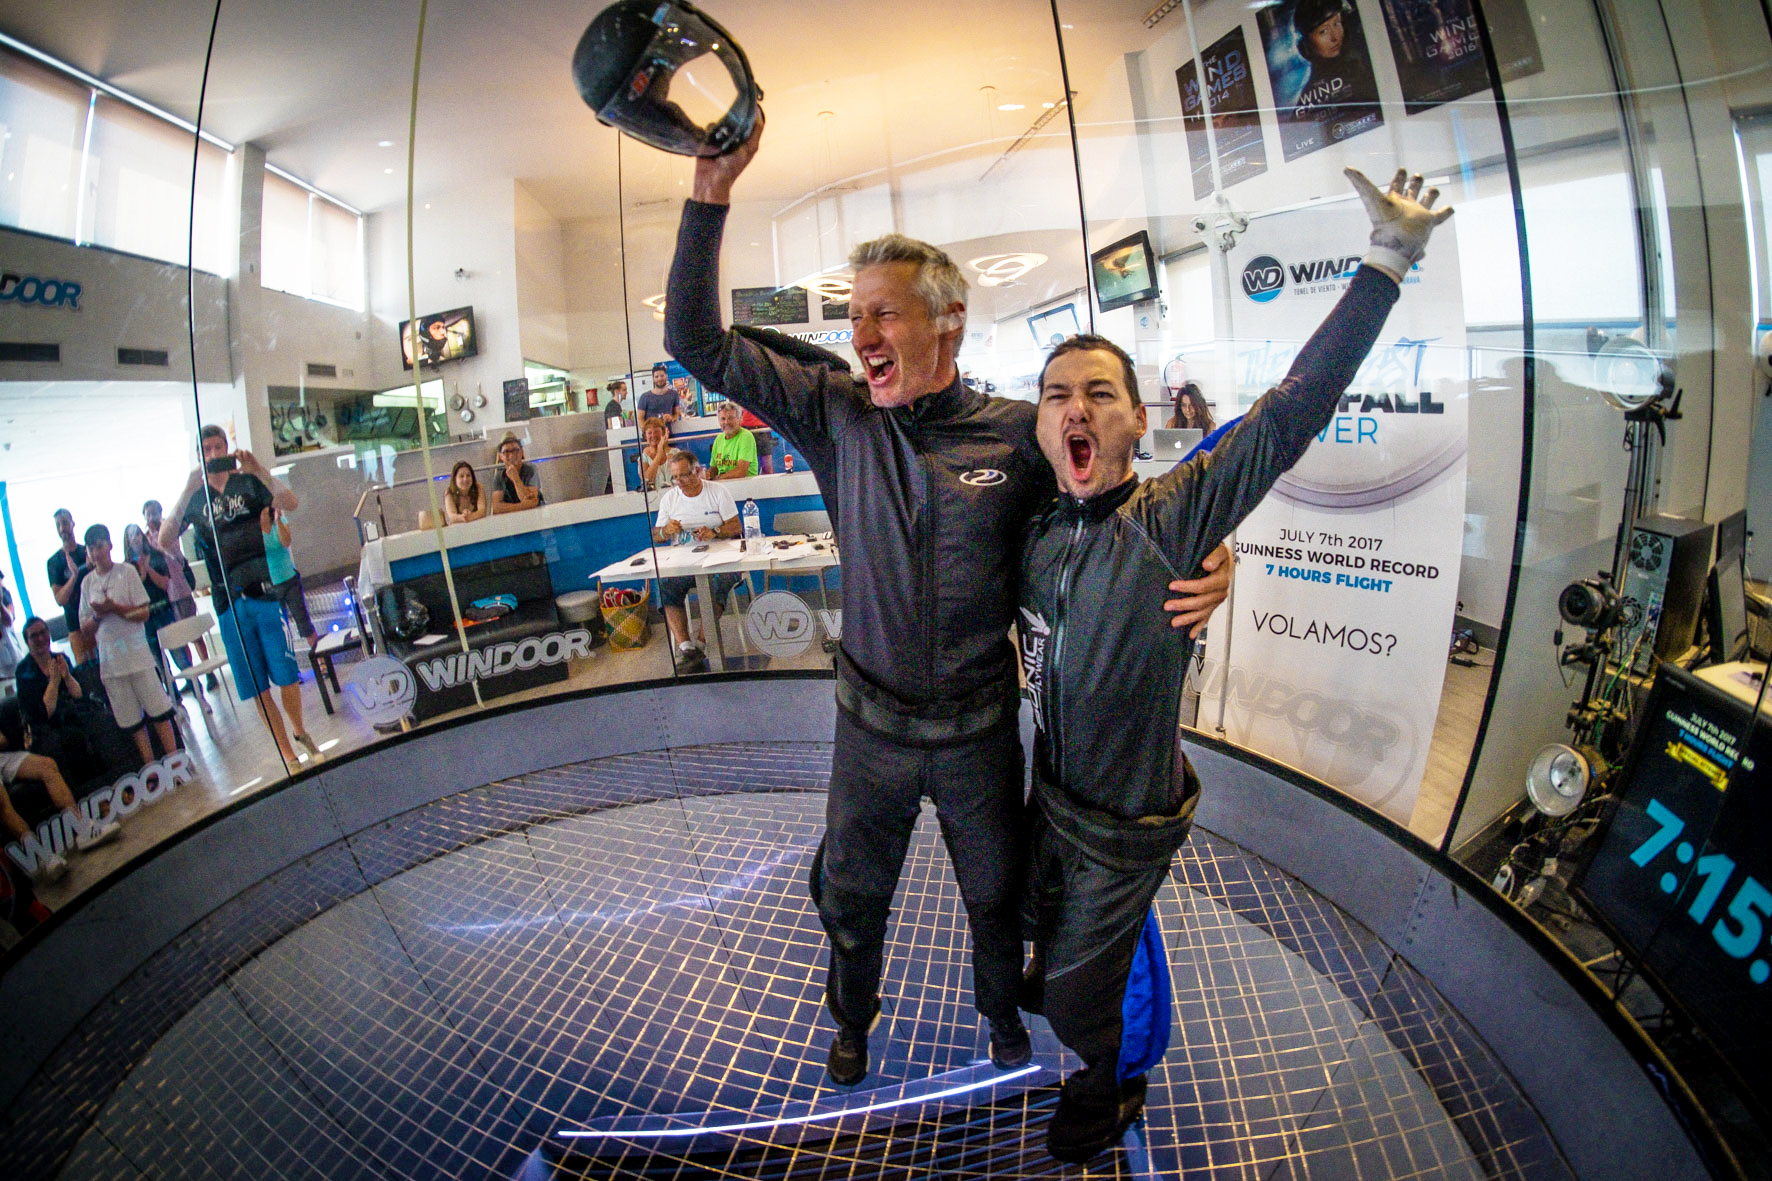 guinness-world-record-indoor-skydiving-longest-freefall-empuriabrava